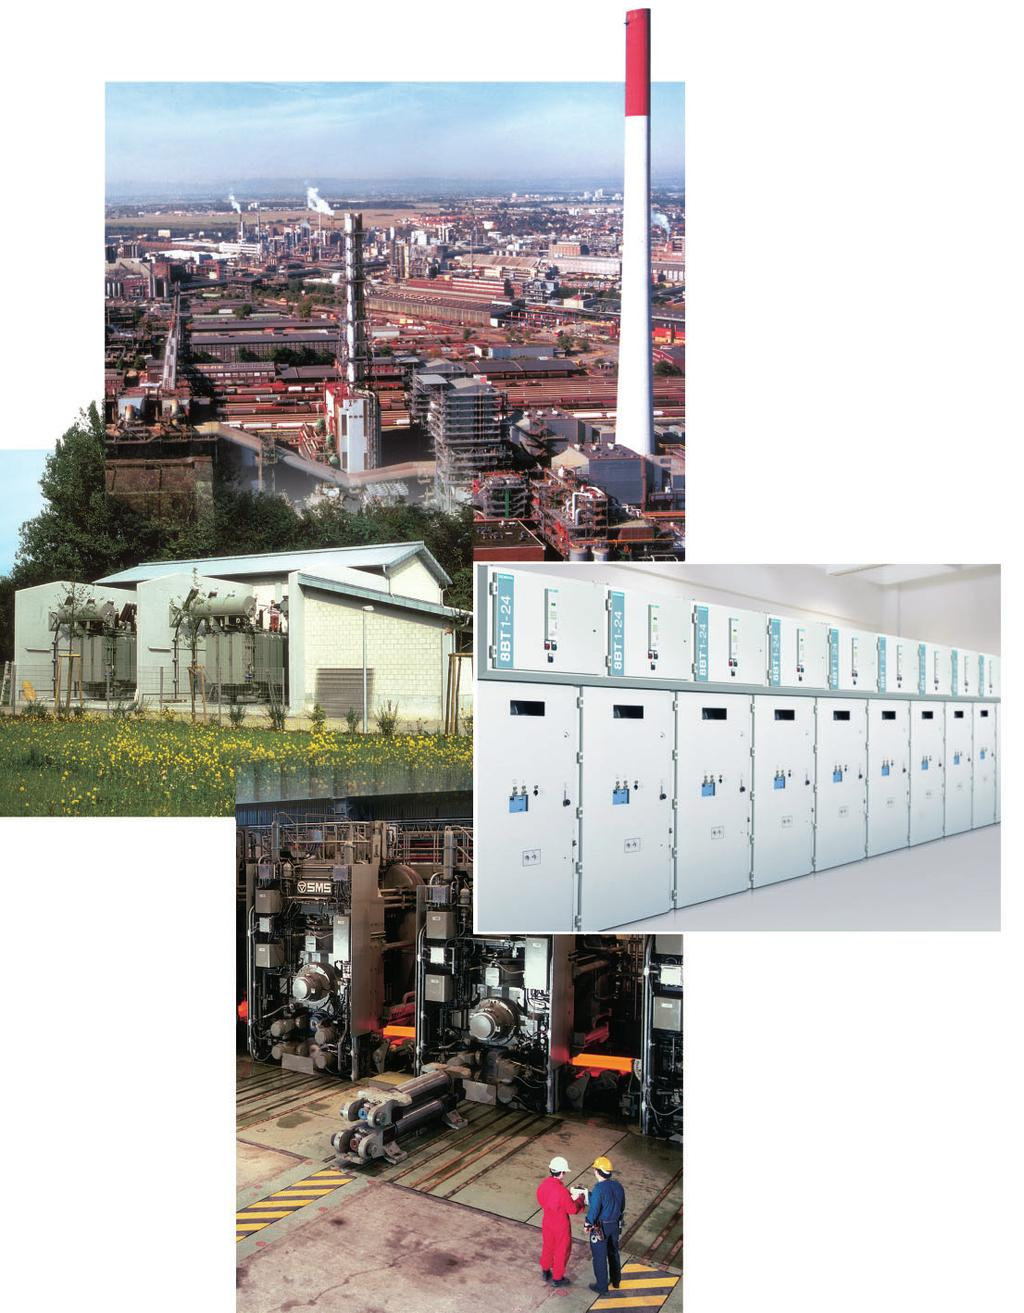 R-HA25-327 eps R-HA25-308 eps R-HA25-326 eps Switchgear Type 8BT1, up to 24 kv, Air-Insulated Application Typical uses